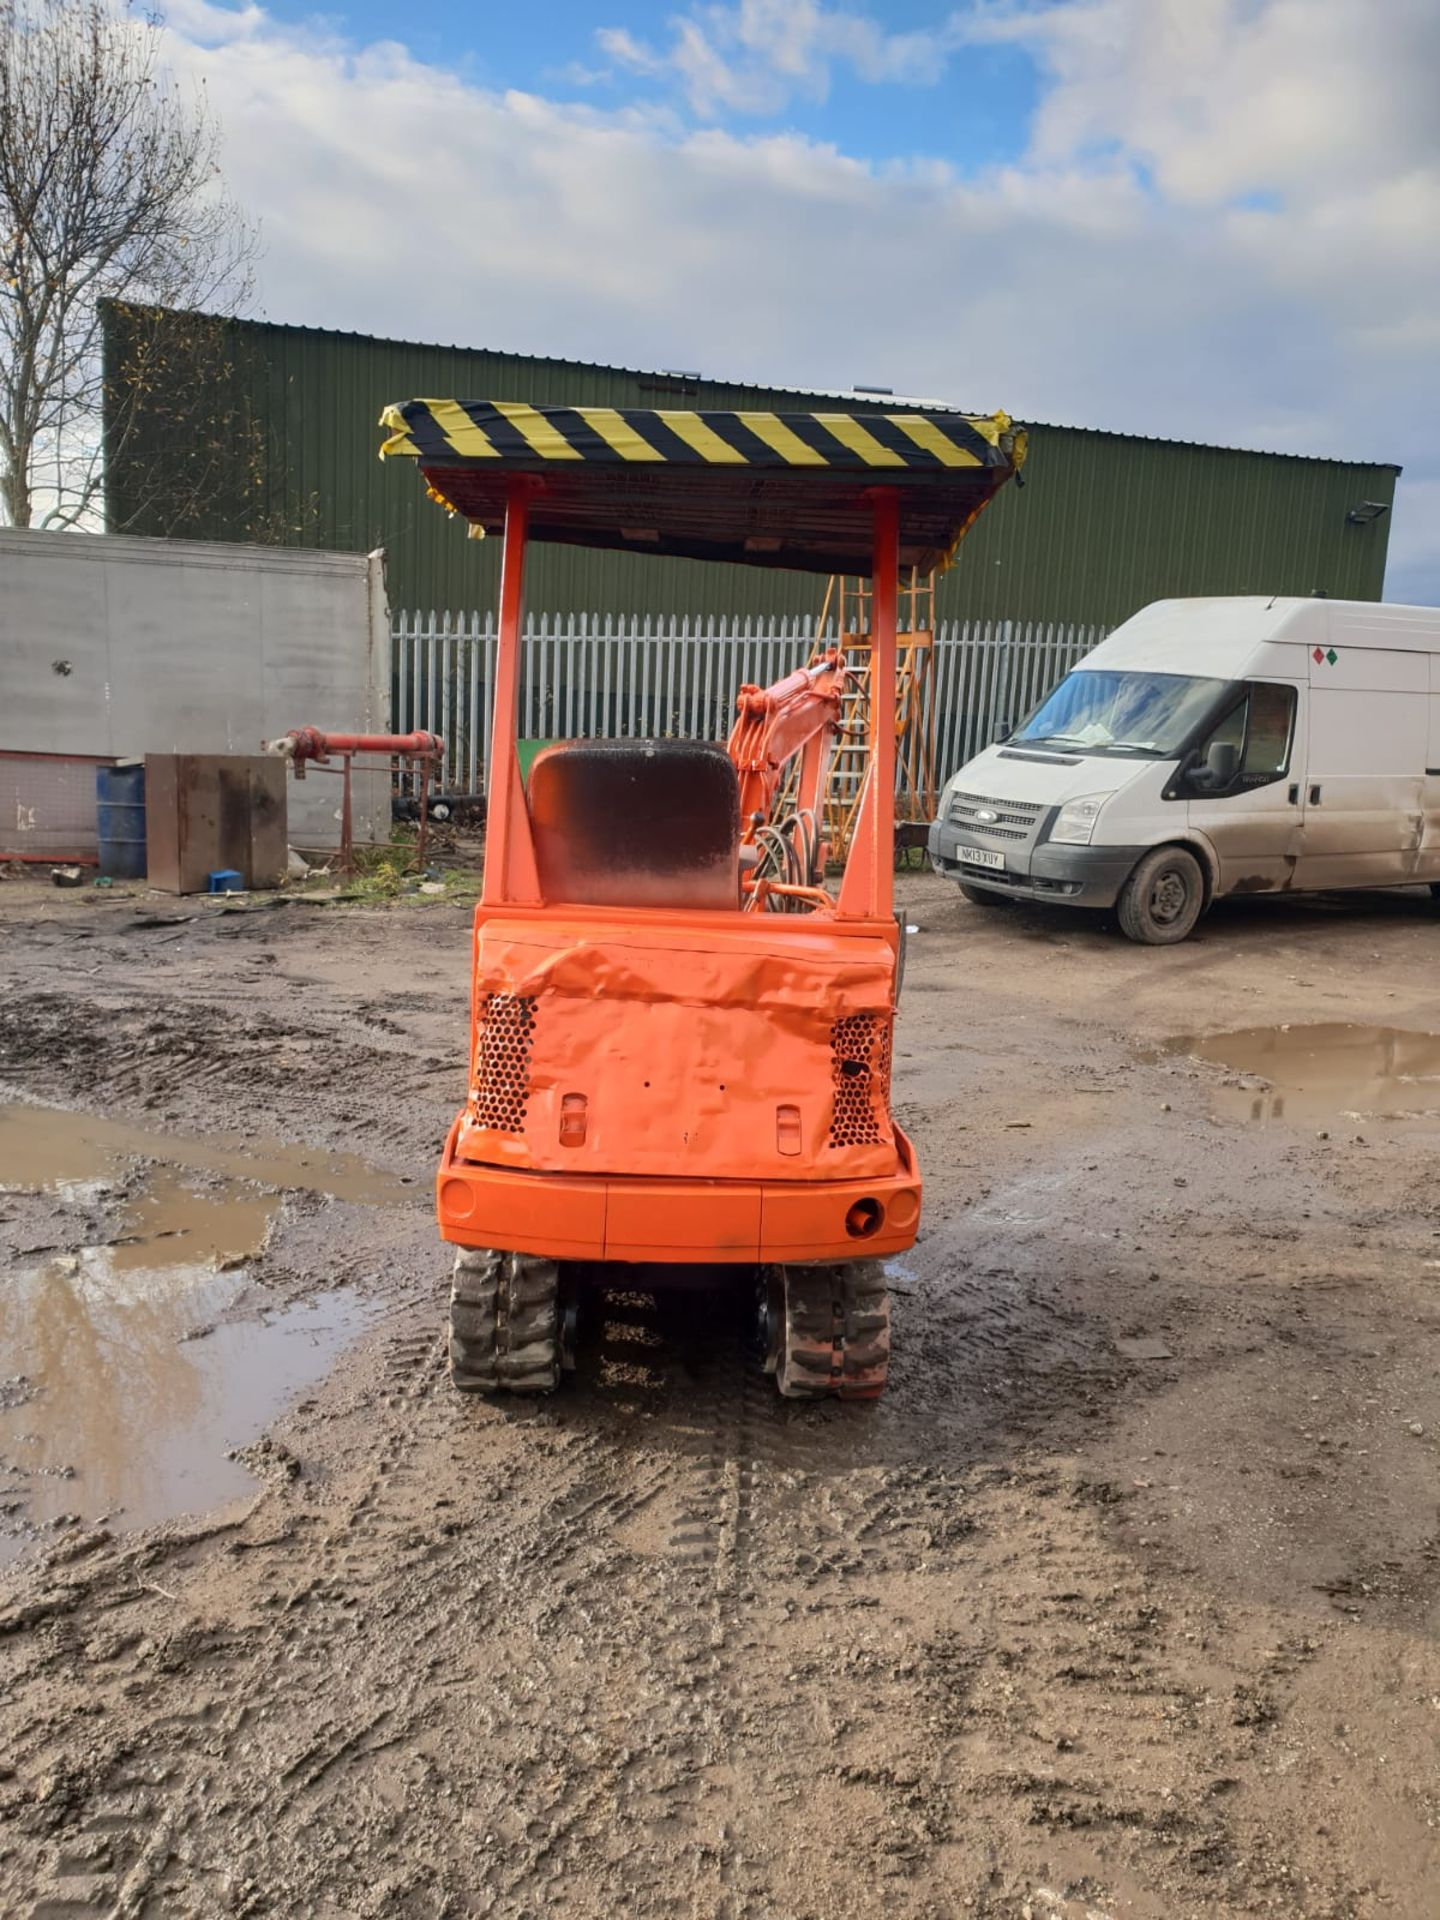 KUBOTA MINI DIGGER RUBBER TRACKED EXCAVATOR, 1.5 TON, STARTS AND DRIVES *NO VAT* - Image 8 of 8